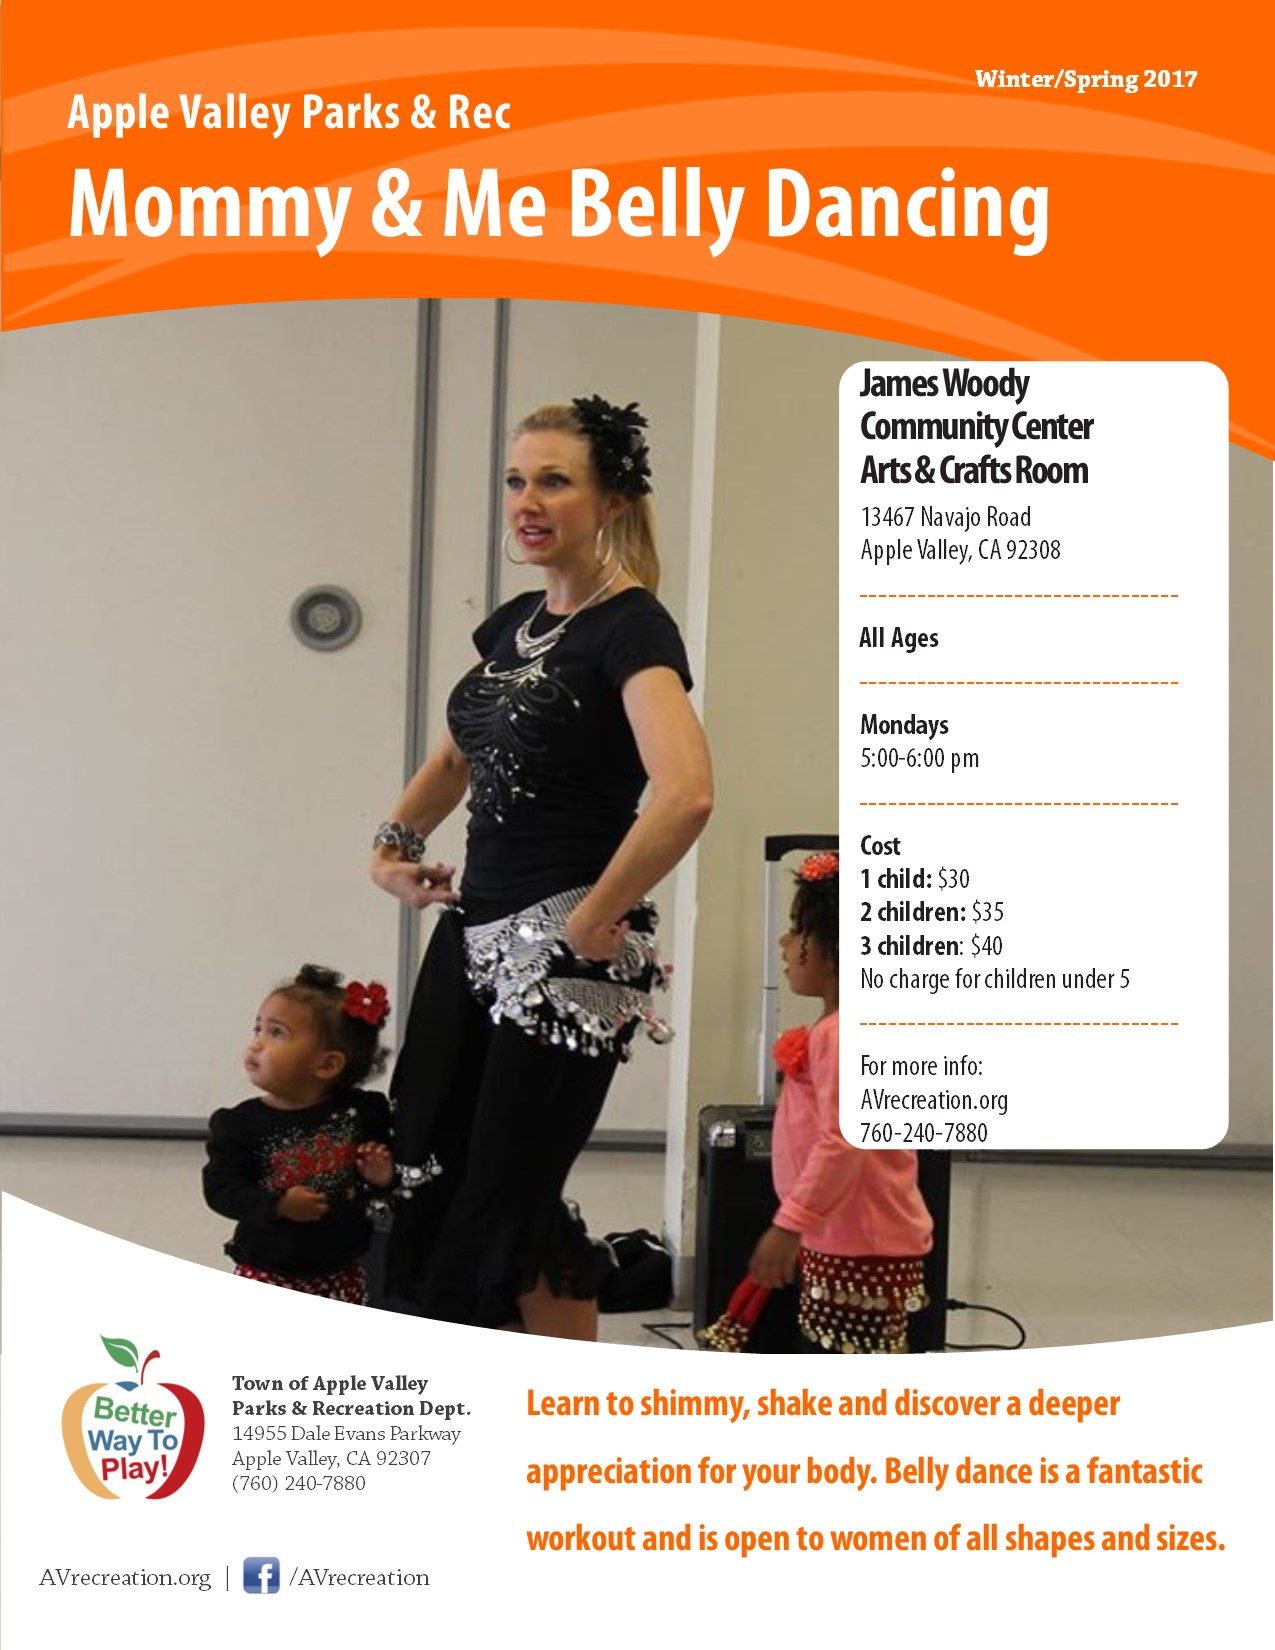 Mommy & Me Belly Dancing